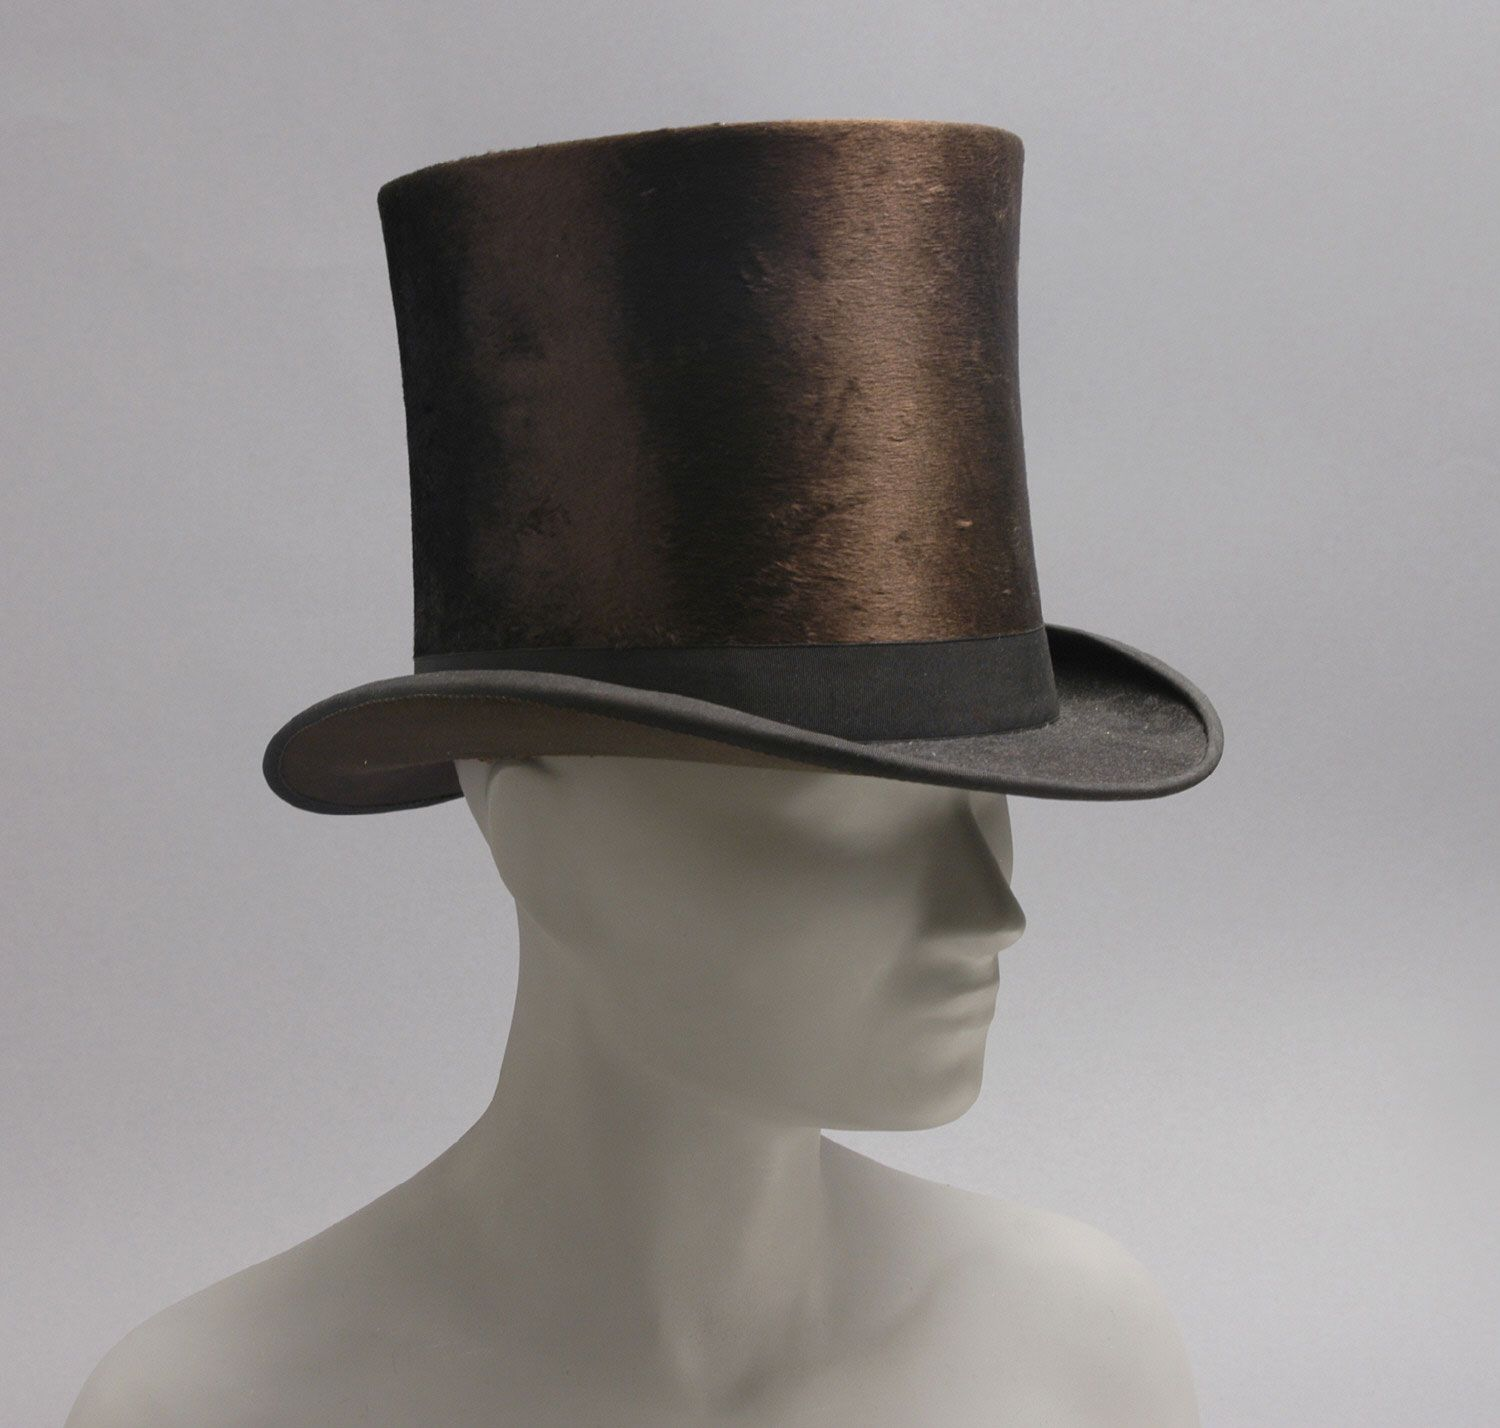 Philadelphia Museum Of Art Collections Object Man S Top Hat Victorian Mens Clothing 19th Century Mens Fashion Top Hat